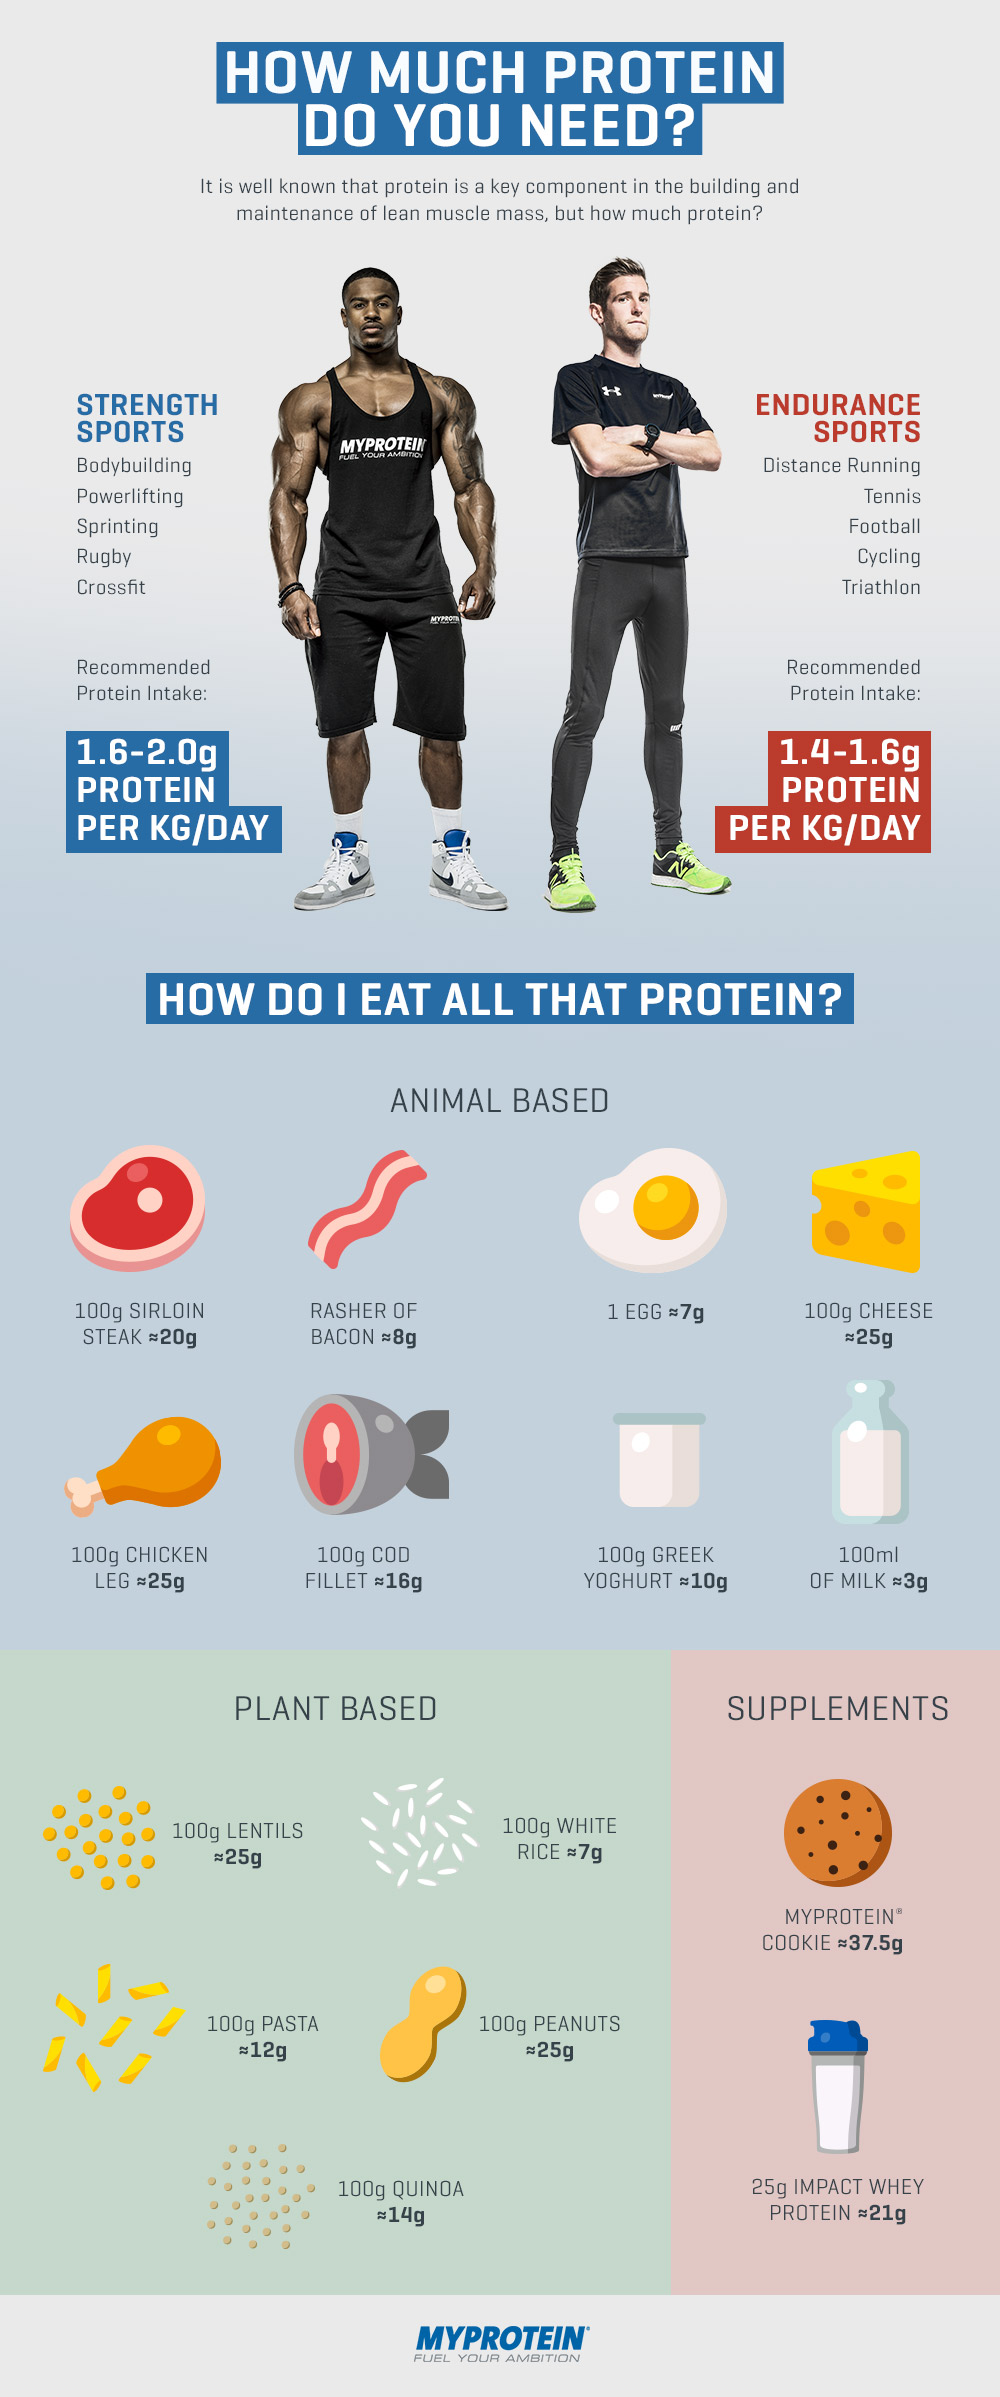 protein builds and maintains muscle, how much do you need